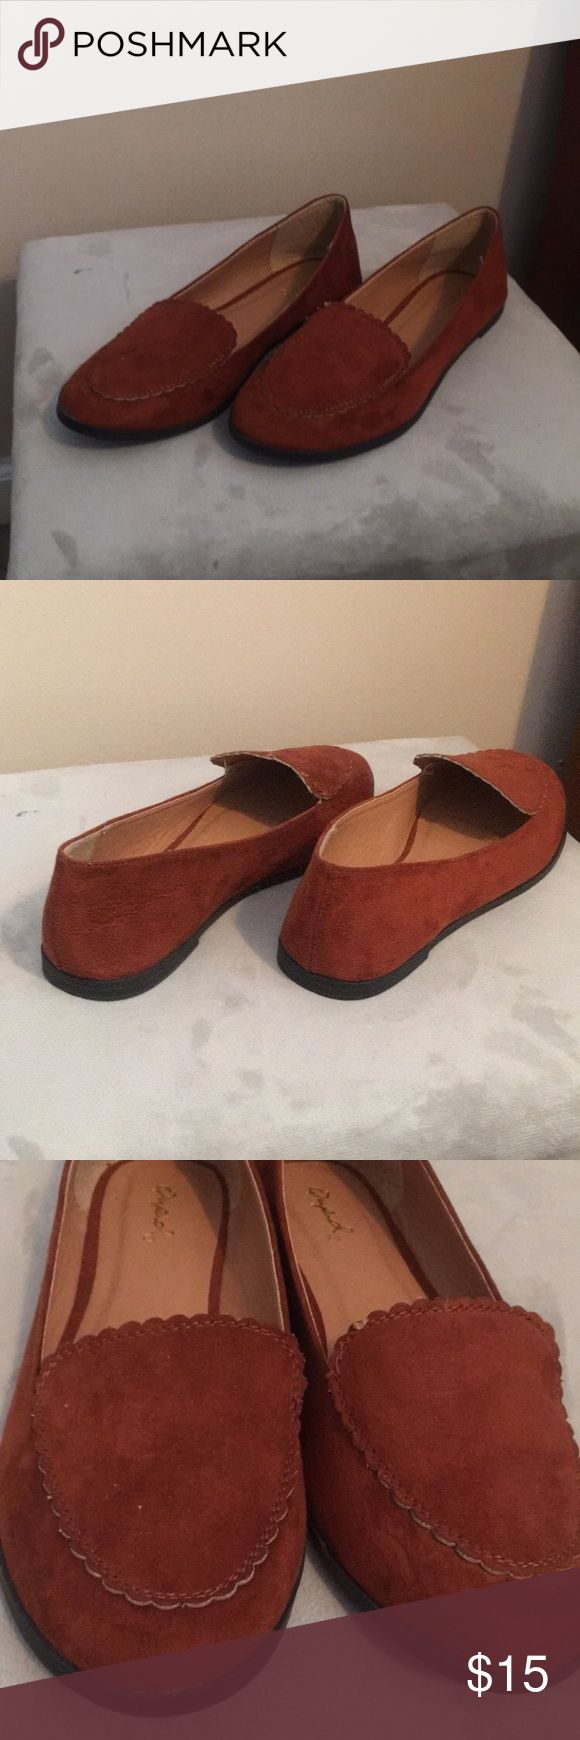 Brown suede loafers Never worn, scalloped detail on top of shoe, NWT, brown shoe with black soles Qupid Shoes Flats & Loafers